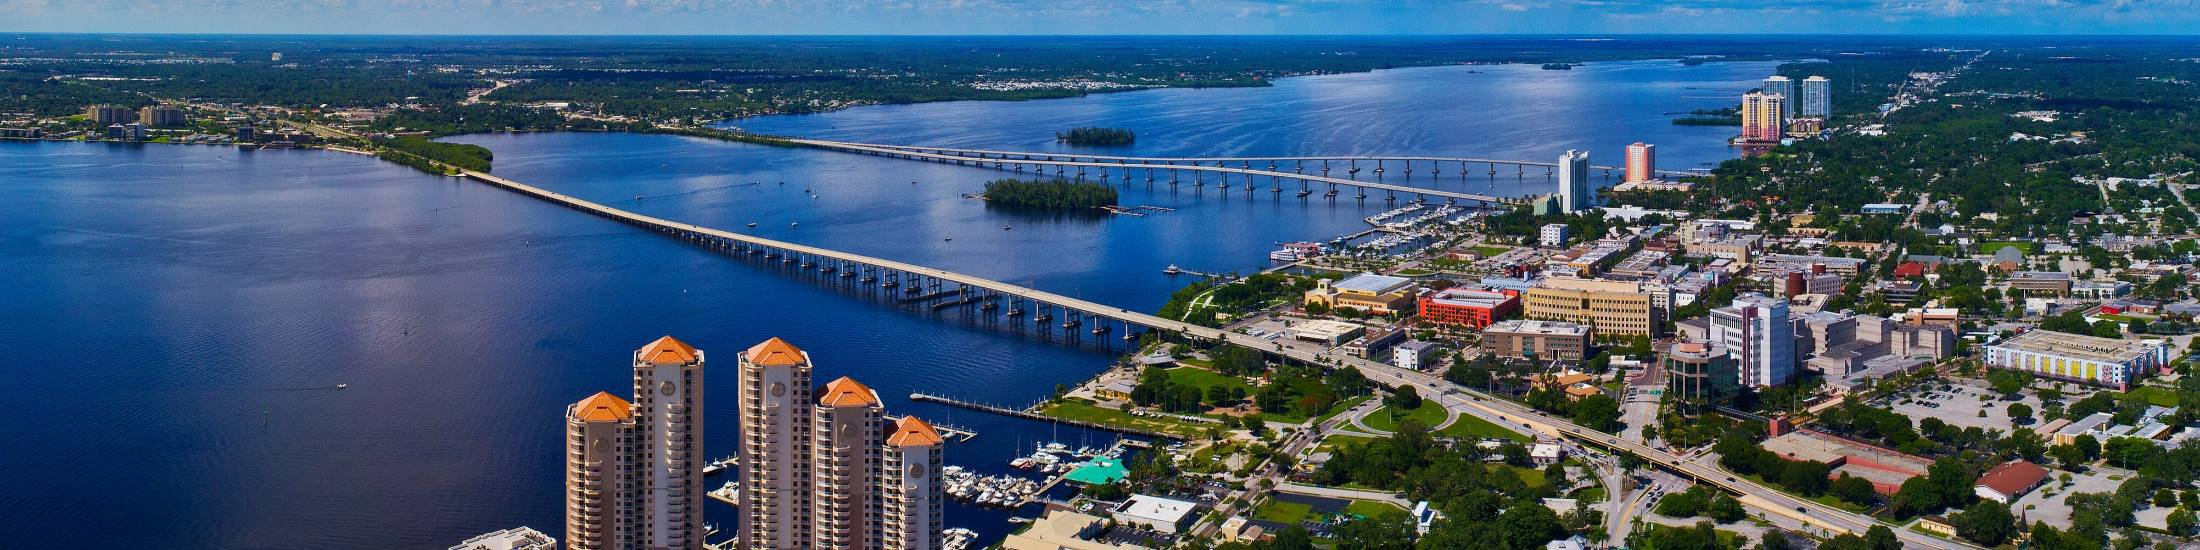 Waterway Estates Homes for Sale & North Fort Myers Real Estate for sale by The Koffman Group